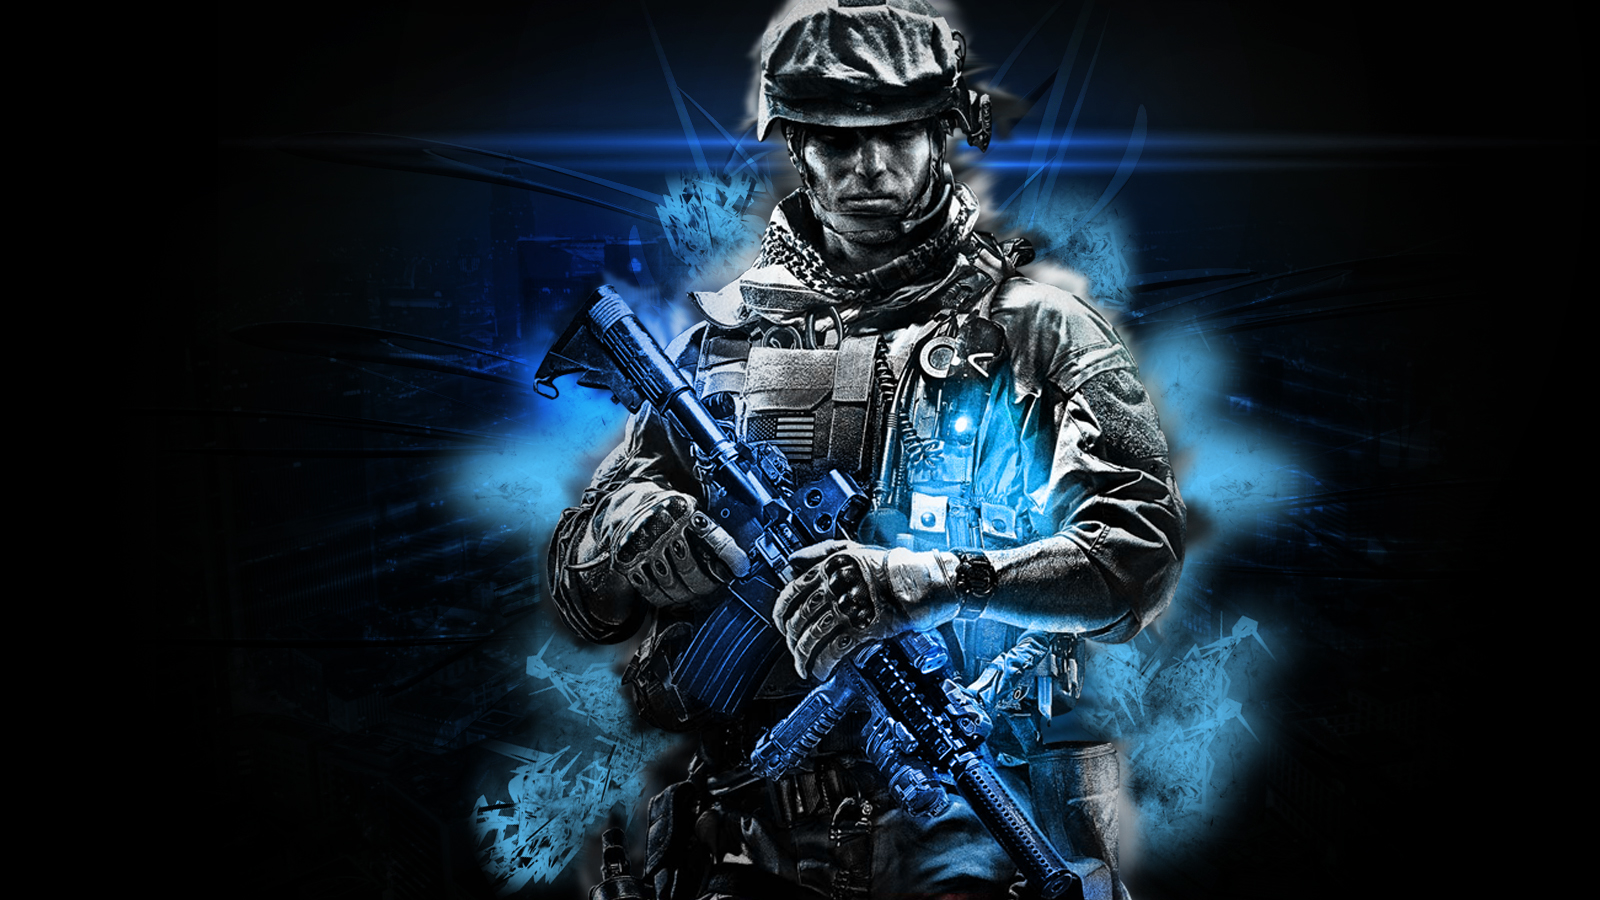 http://3.bp.blogspot.com/-3u3F0HyDs4w/UM1TJBw3icI/AAAAAAAATu0/1hITlEI0wlo/s1600/Wallpaper+Background+Desktop+battlefield-3-wallpaper-HD+fondowallpaper.blogspot.com.jpg